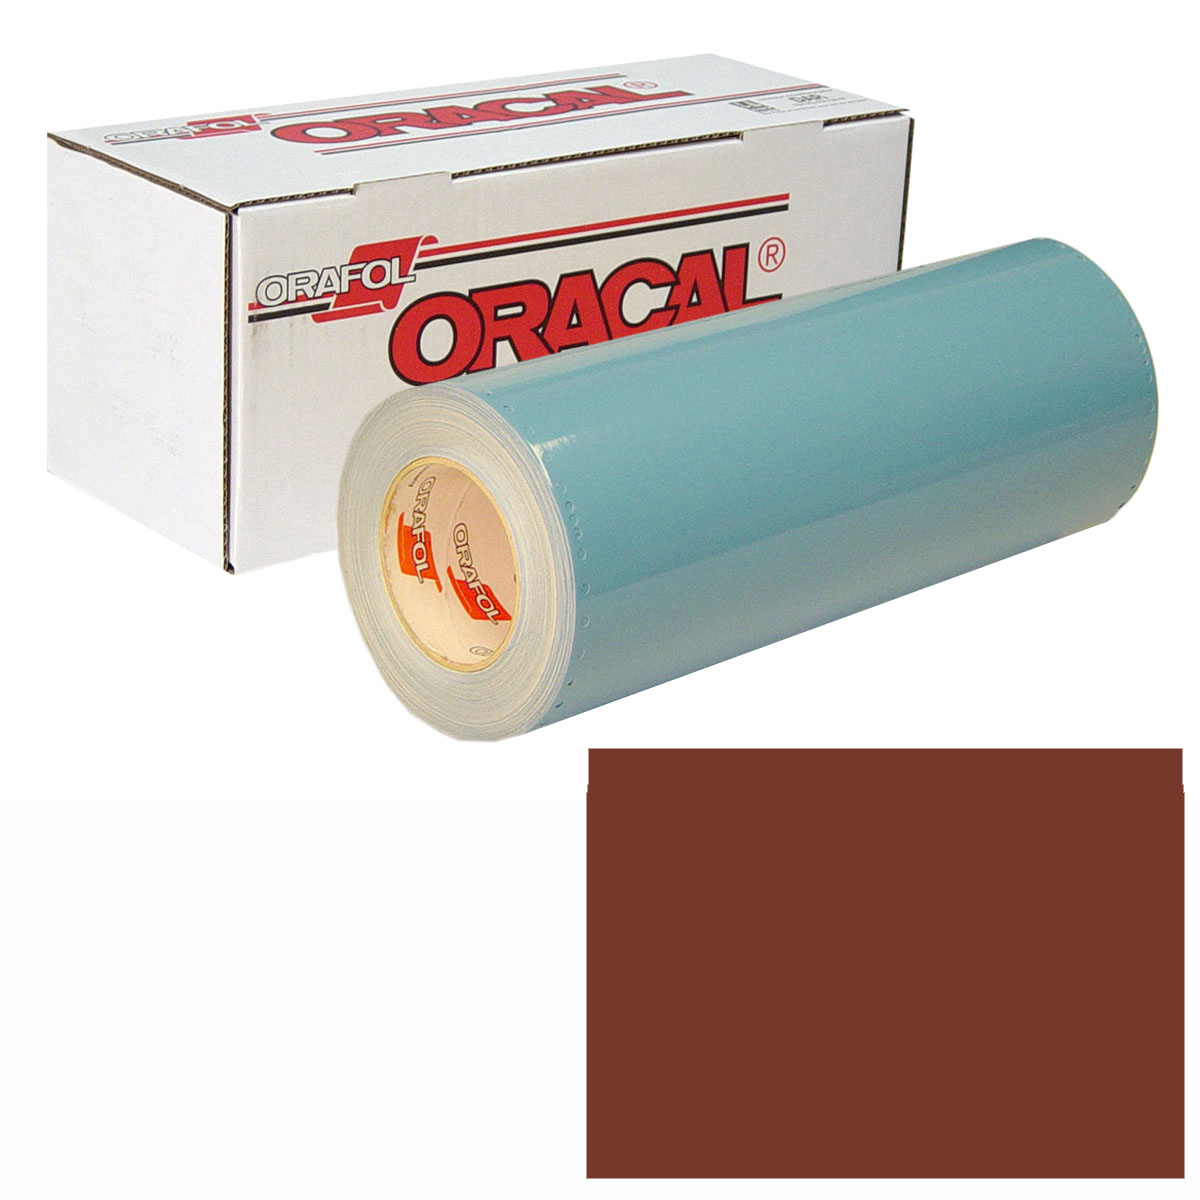 ORACAL 751 Unp 48in X 10yd 079 Red Brown